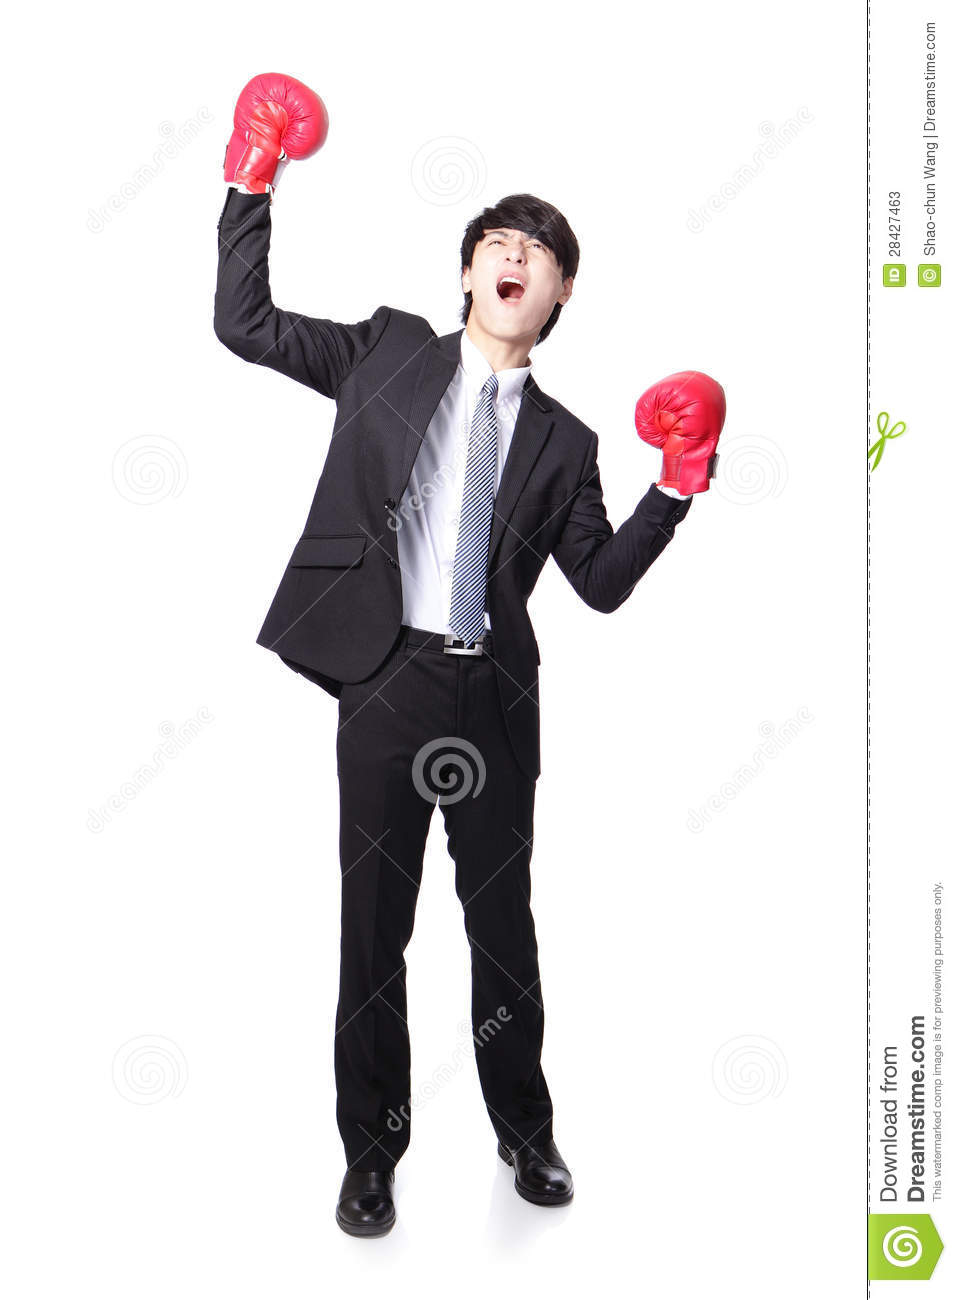 Businessman Wearing Boxing Gloves In A Victory Pose And